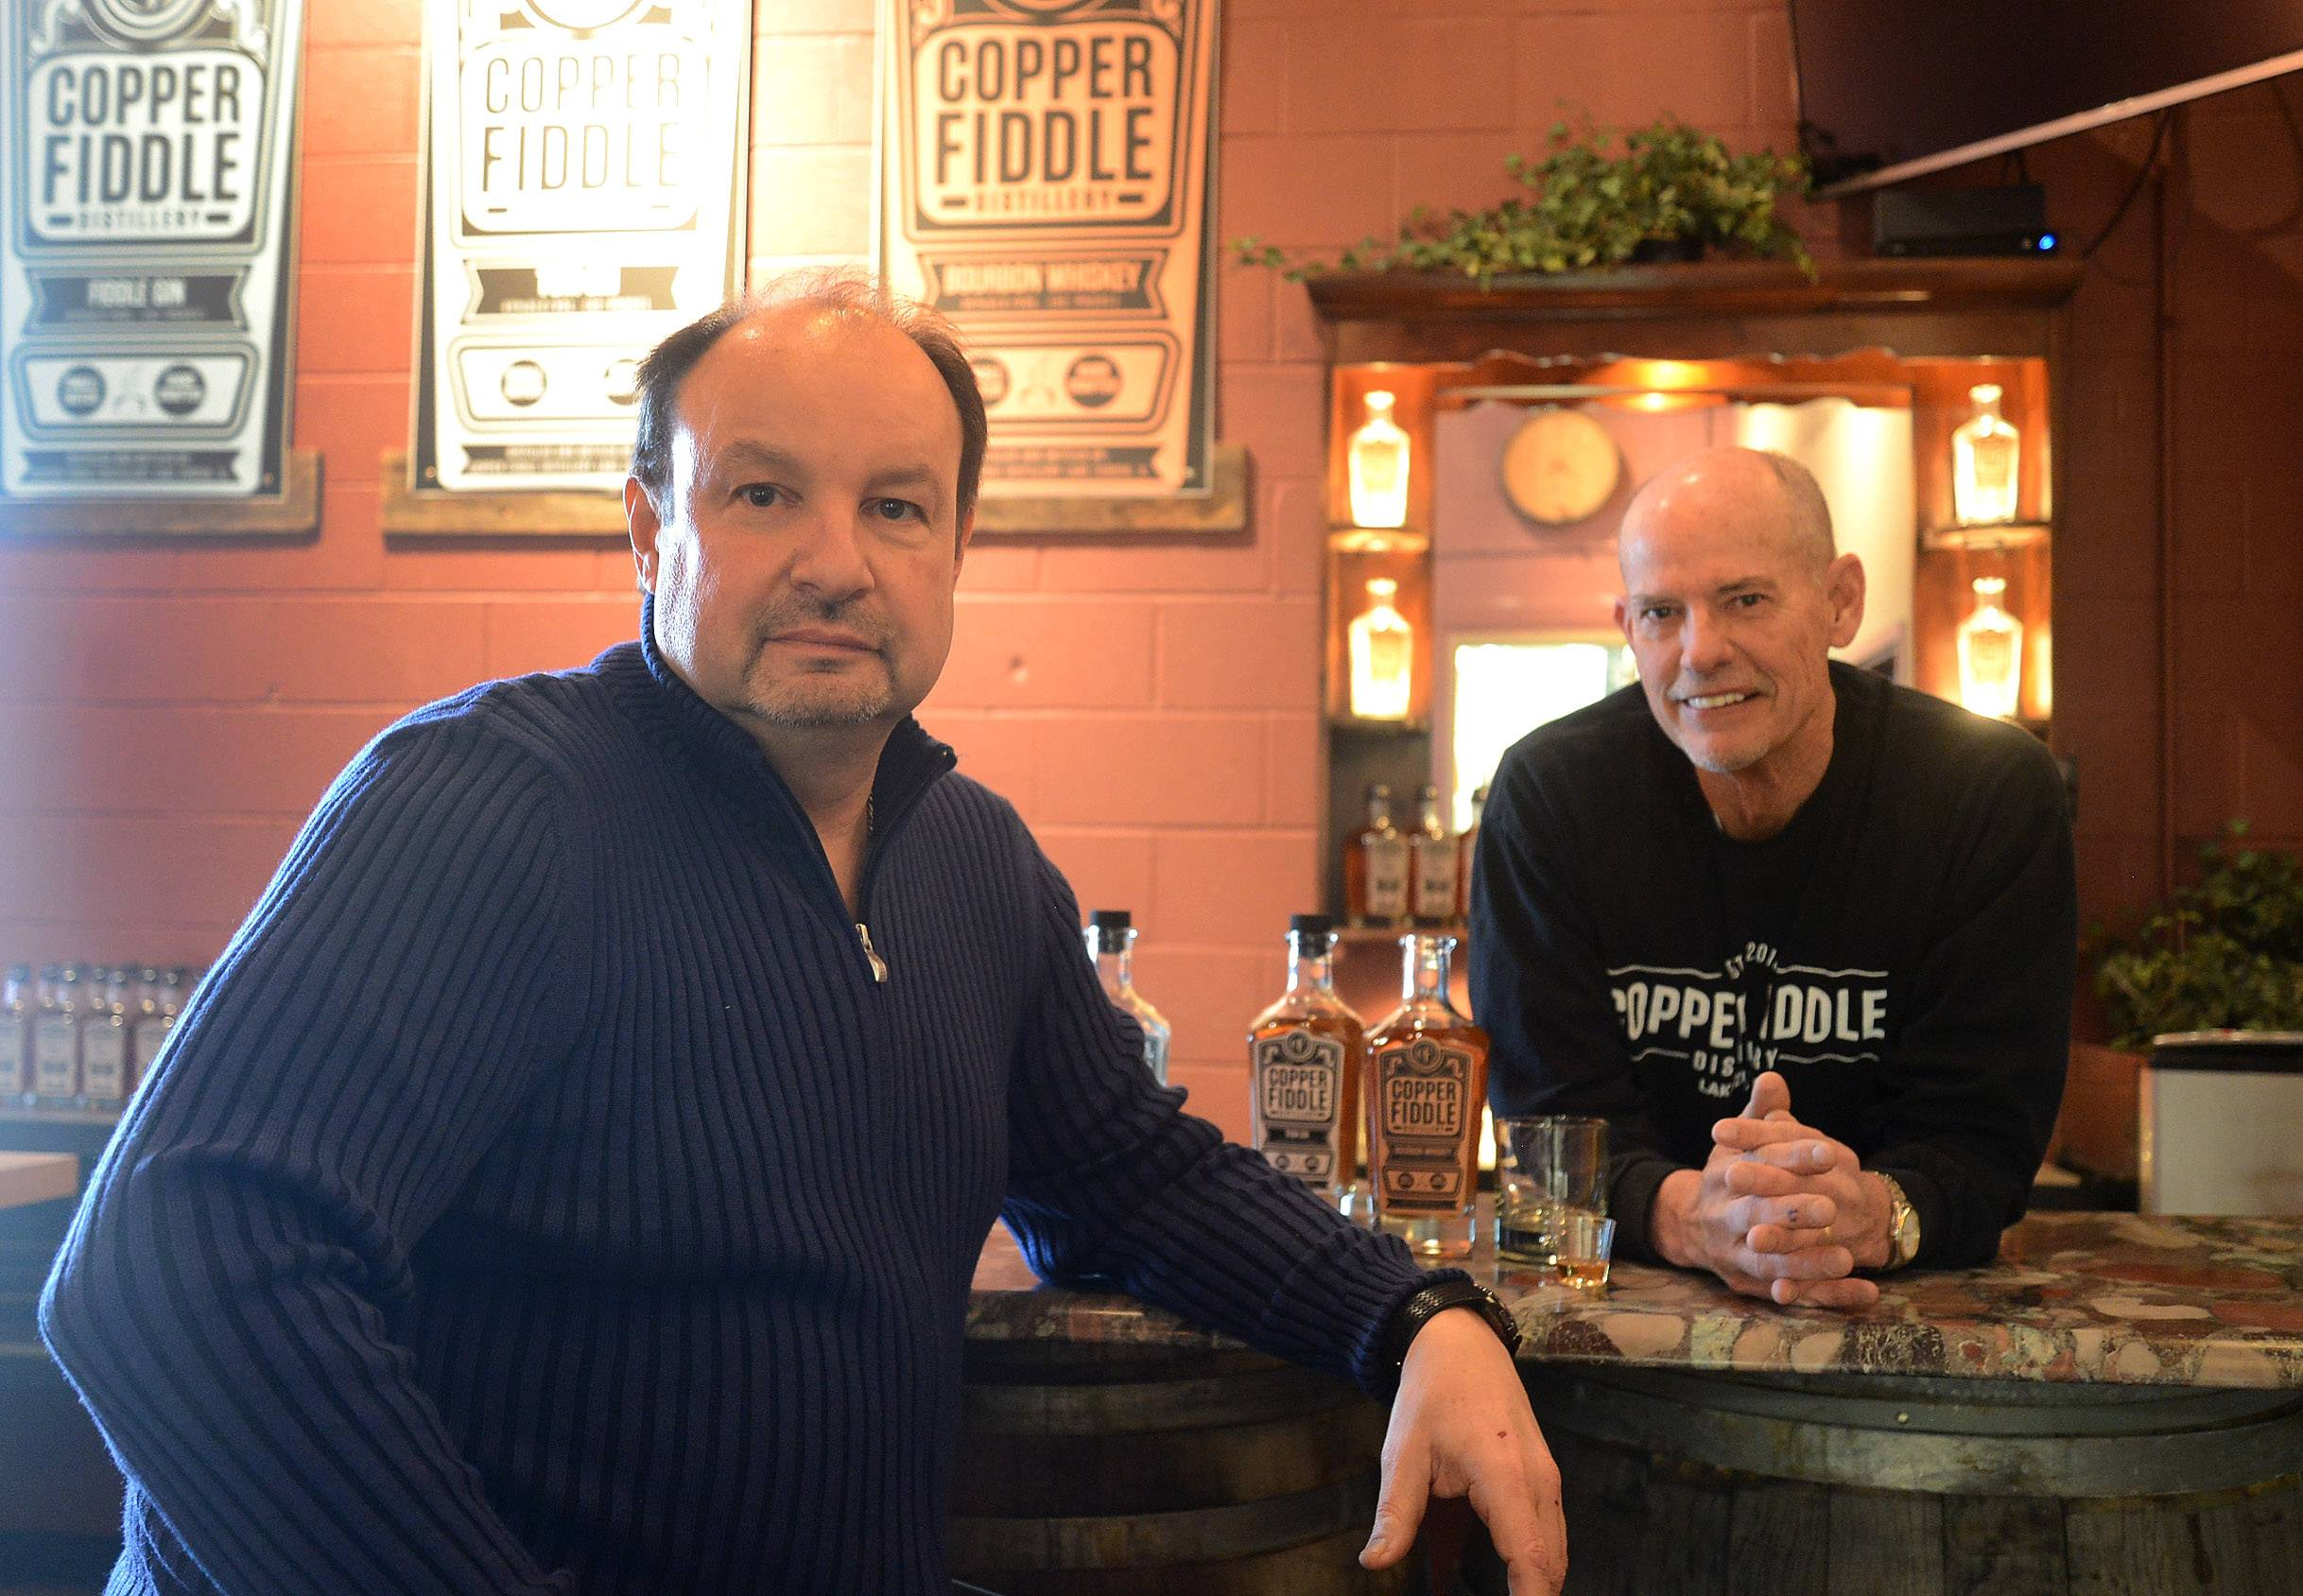 Jose Hernandez, left, and Fred Robinson of Copper Fiddle Distillery in Lake Zurich produce small-batch bourbon and gin in their artisan business.